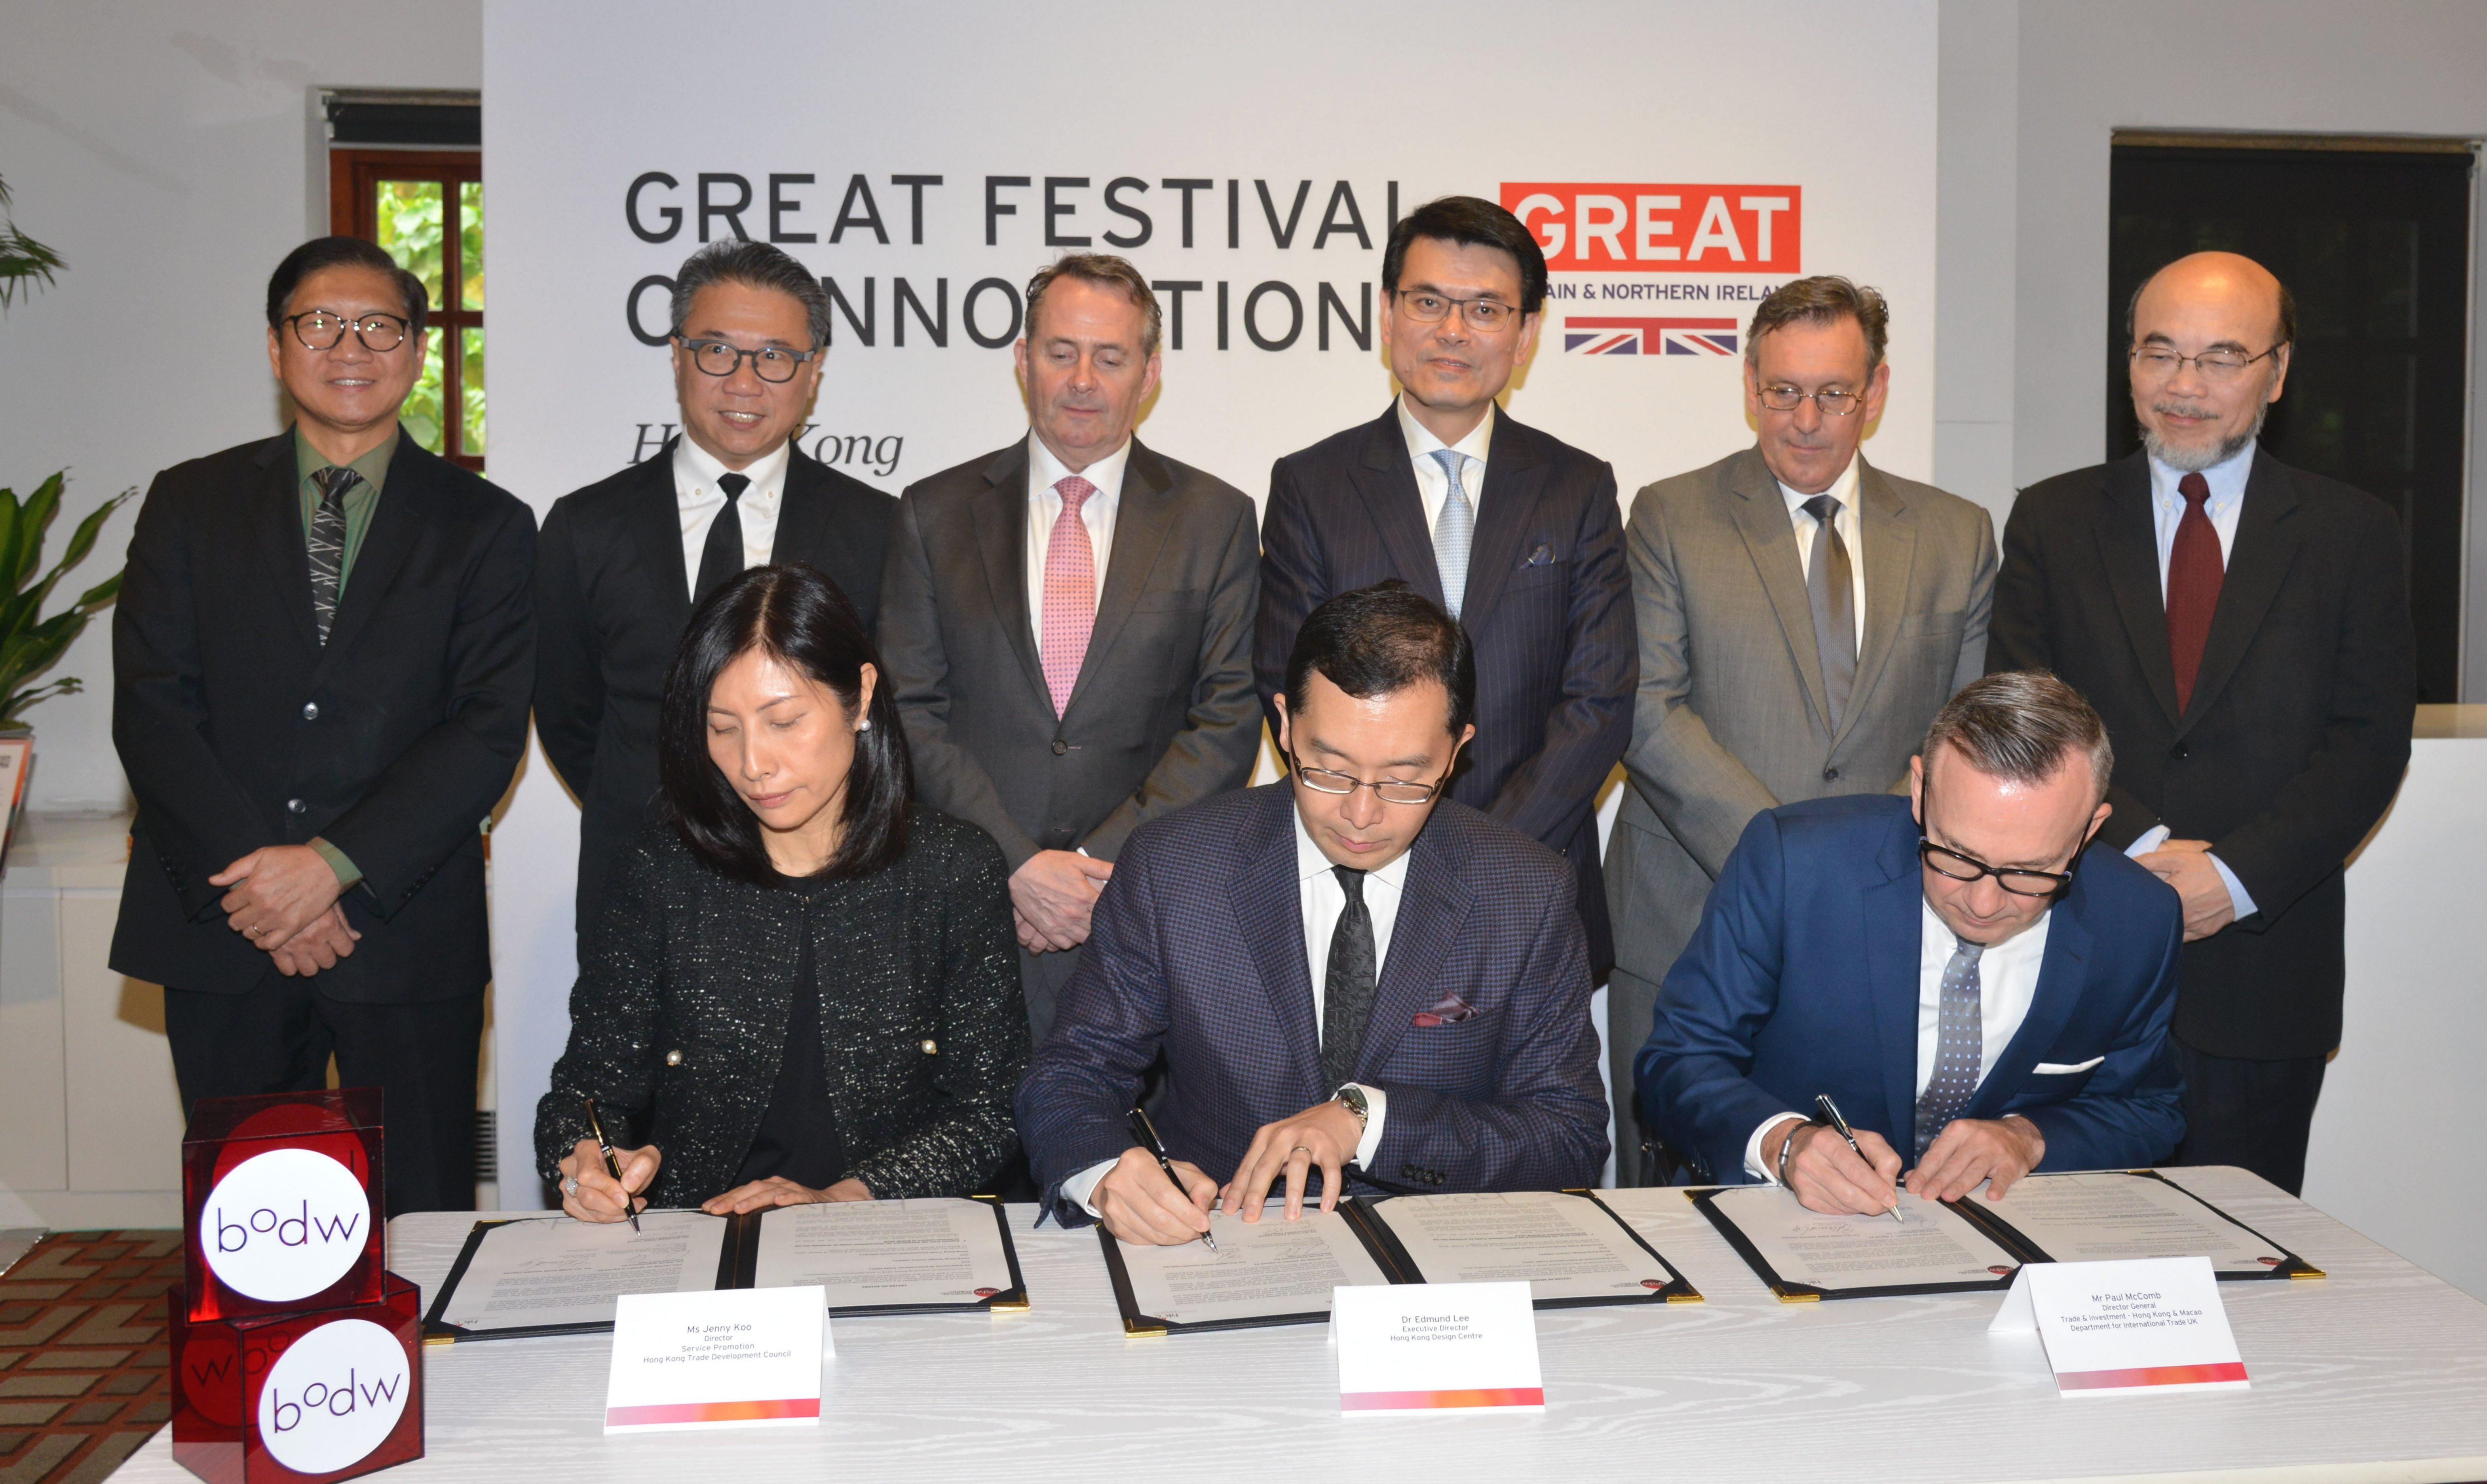 BODW 2019 partners with Great Britain to celebrate great designs